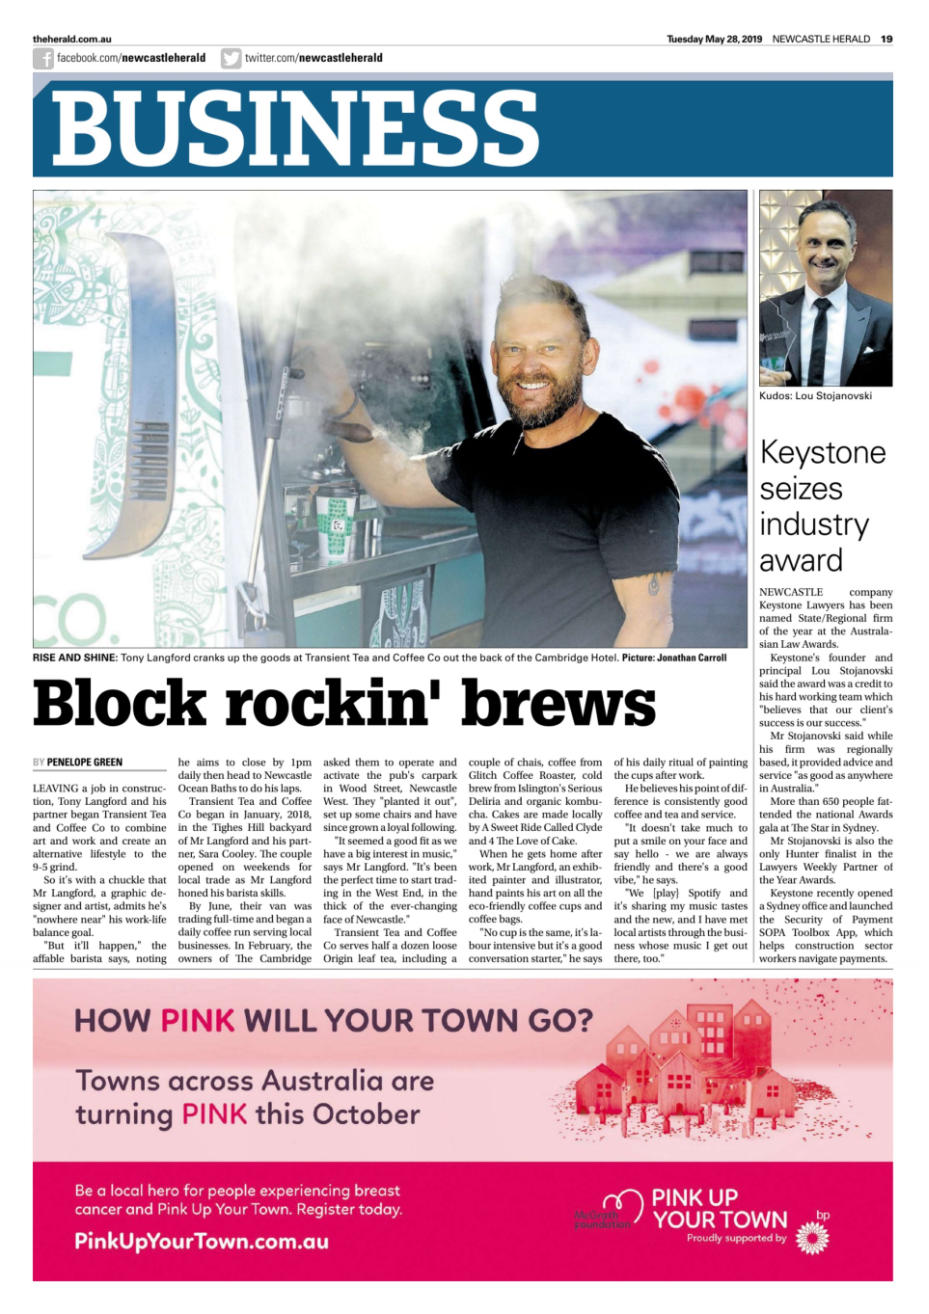 Keystone Featured In The Newcastle Herald